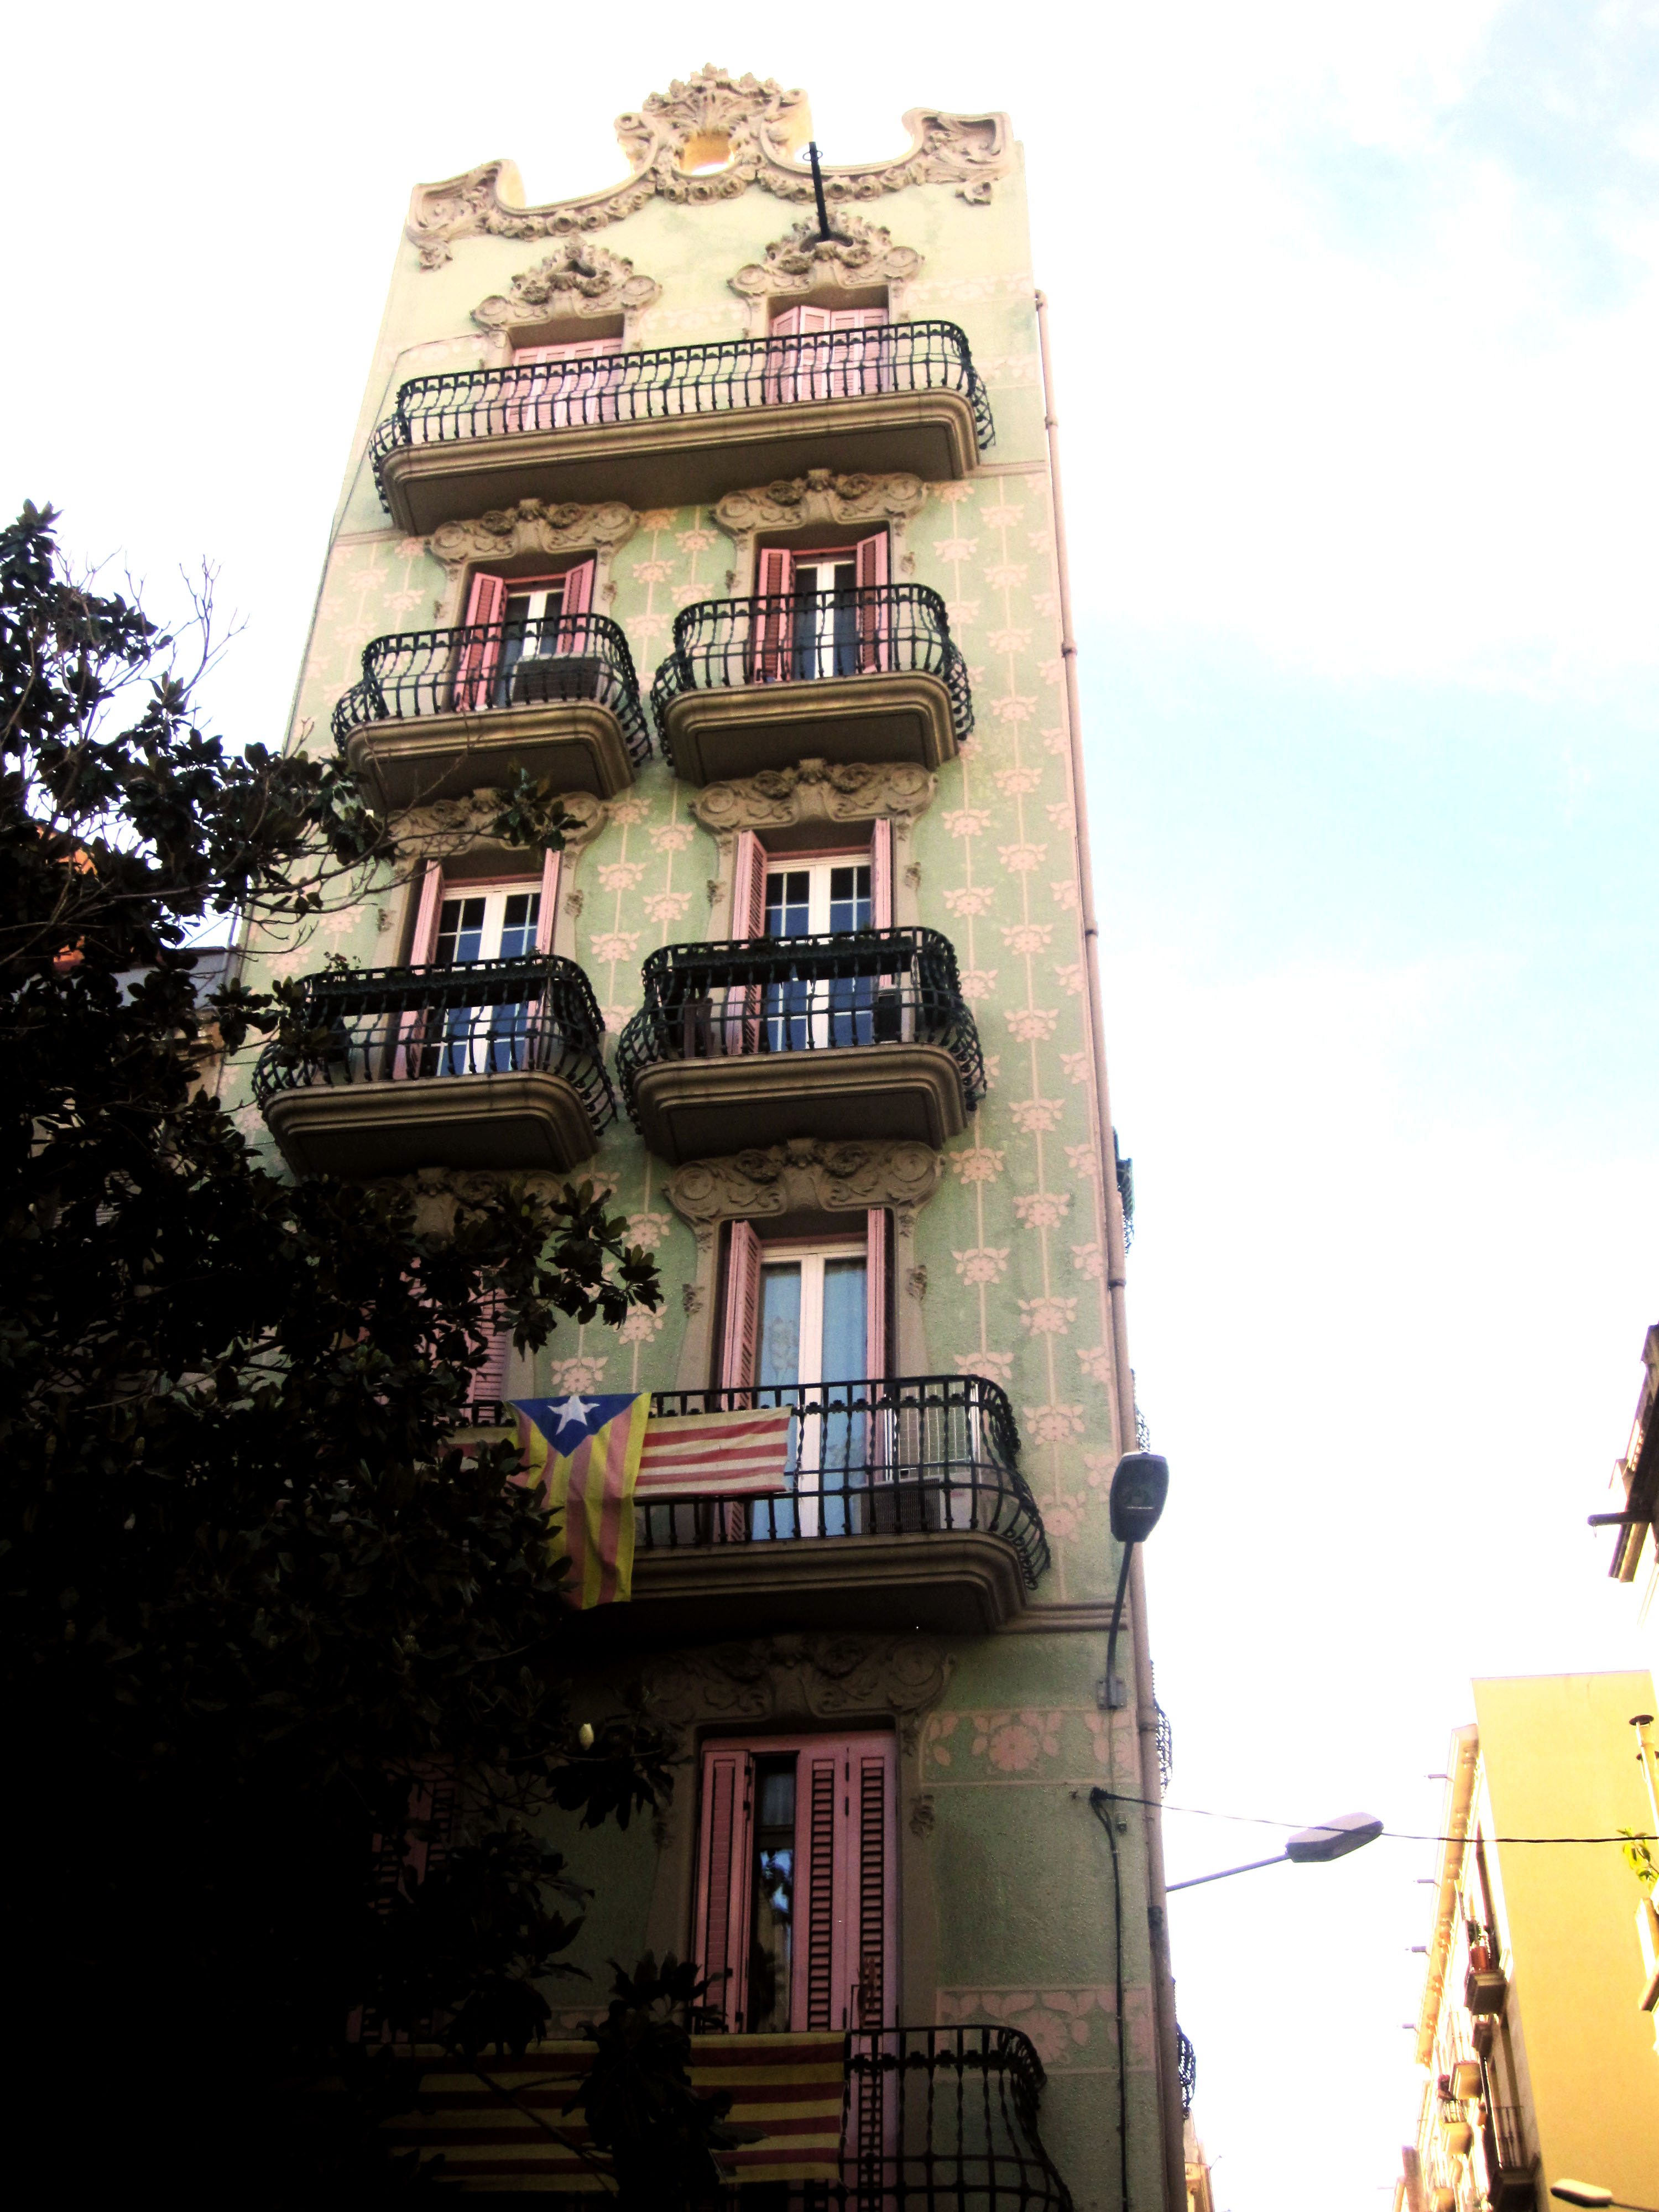 Houses with countless little balconies are typical for the Grácia neighbourhood